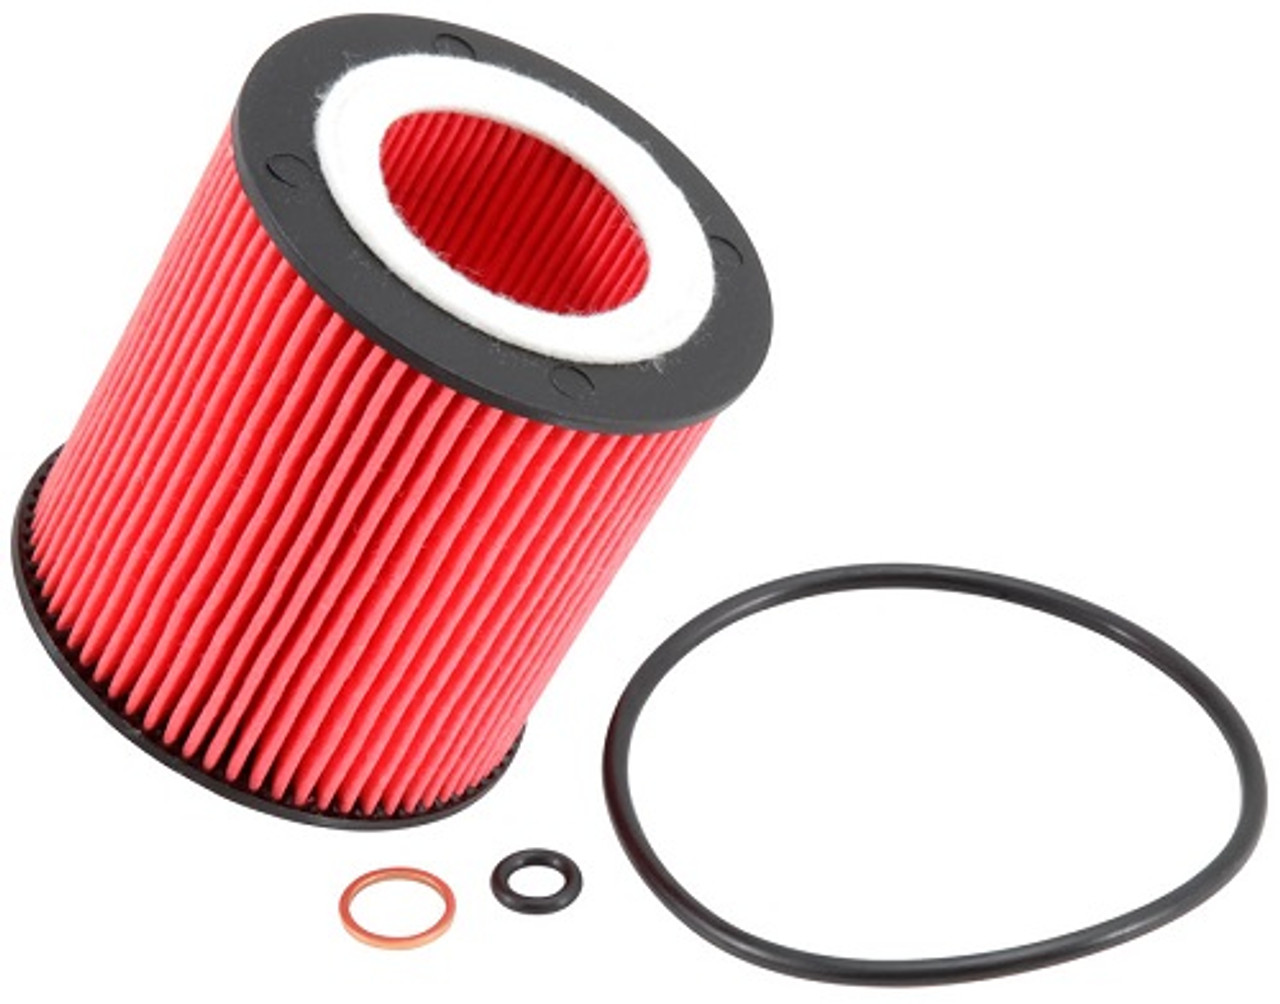 K/&N PS-2011 Pro Series Oil Filter Provides Outstanding Filtration